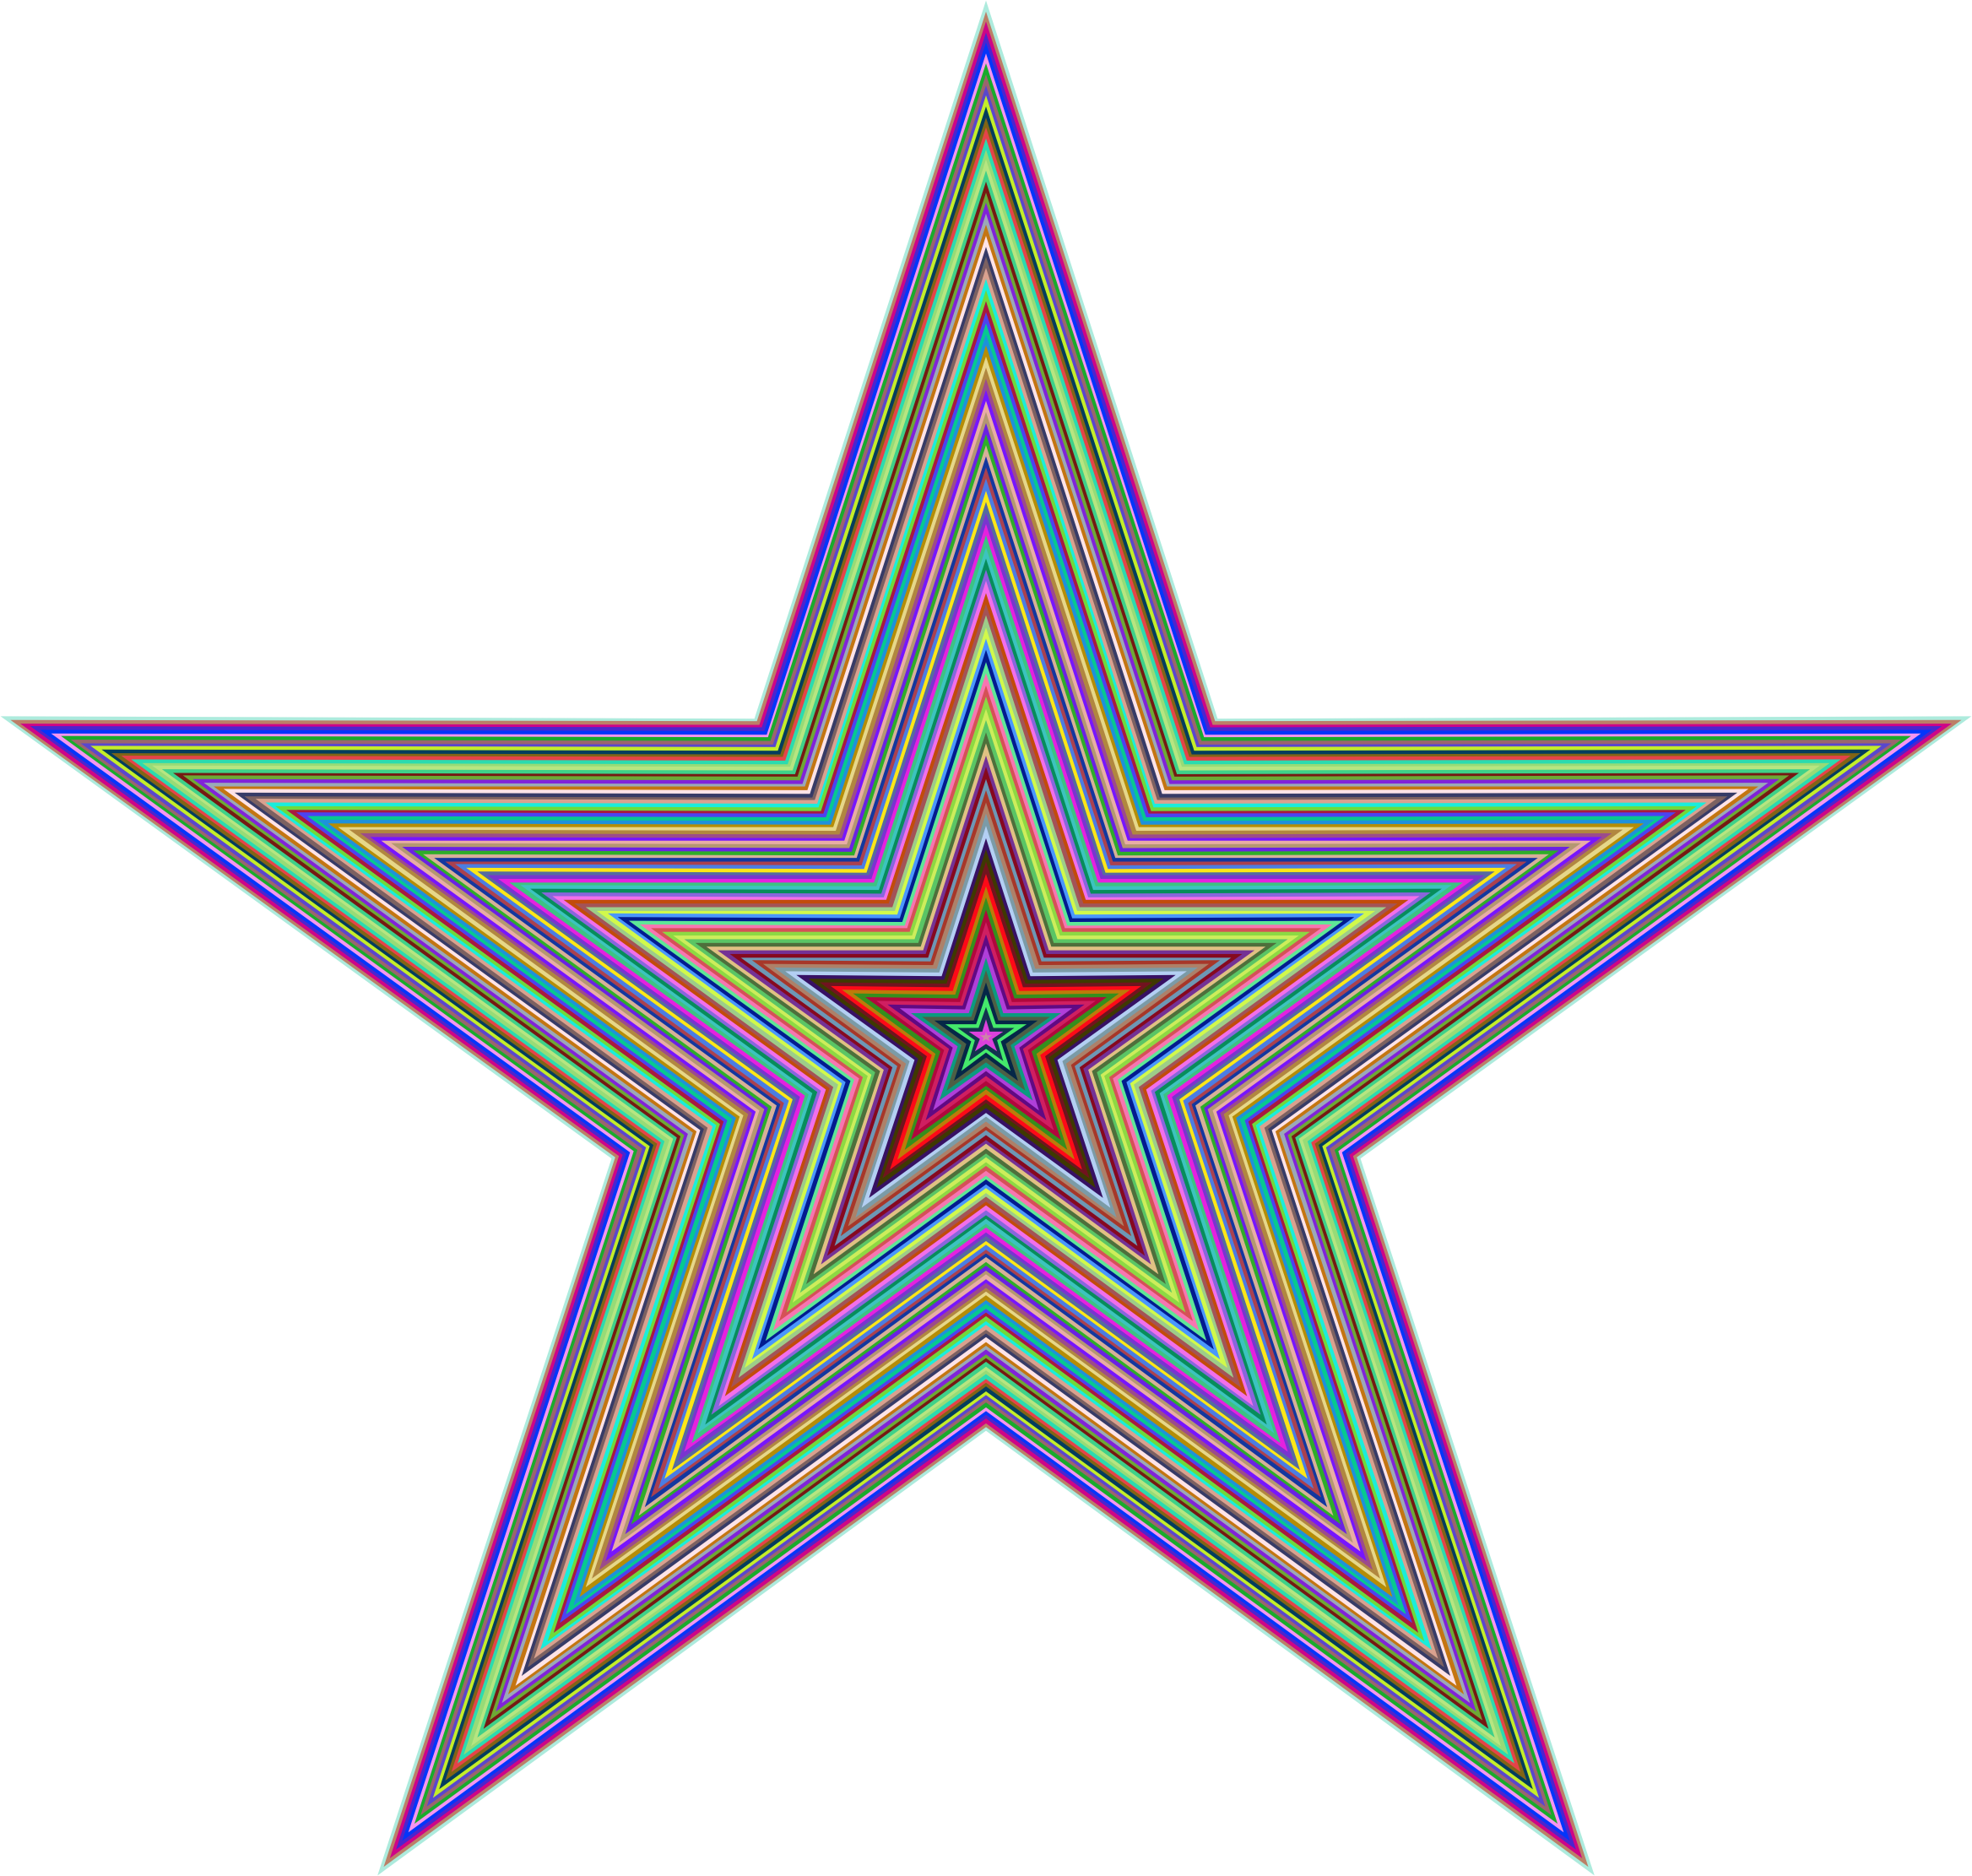 Prismatic Star by GDJ